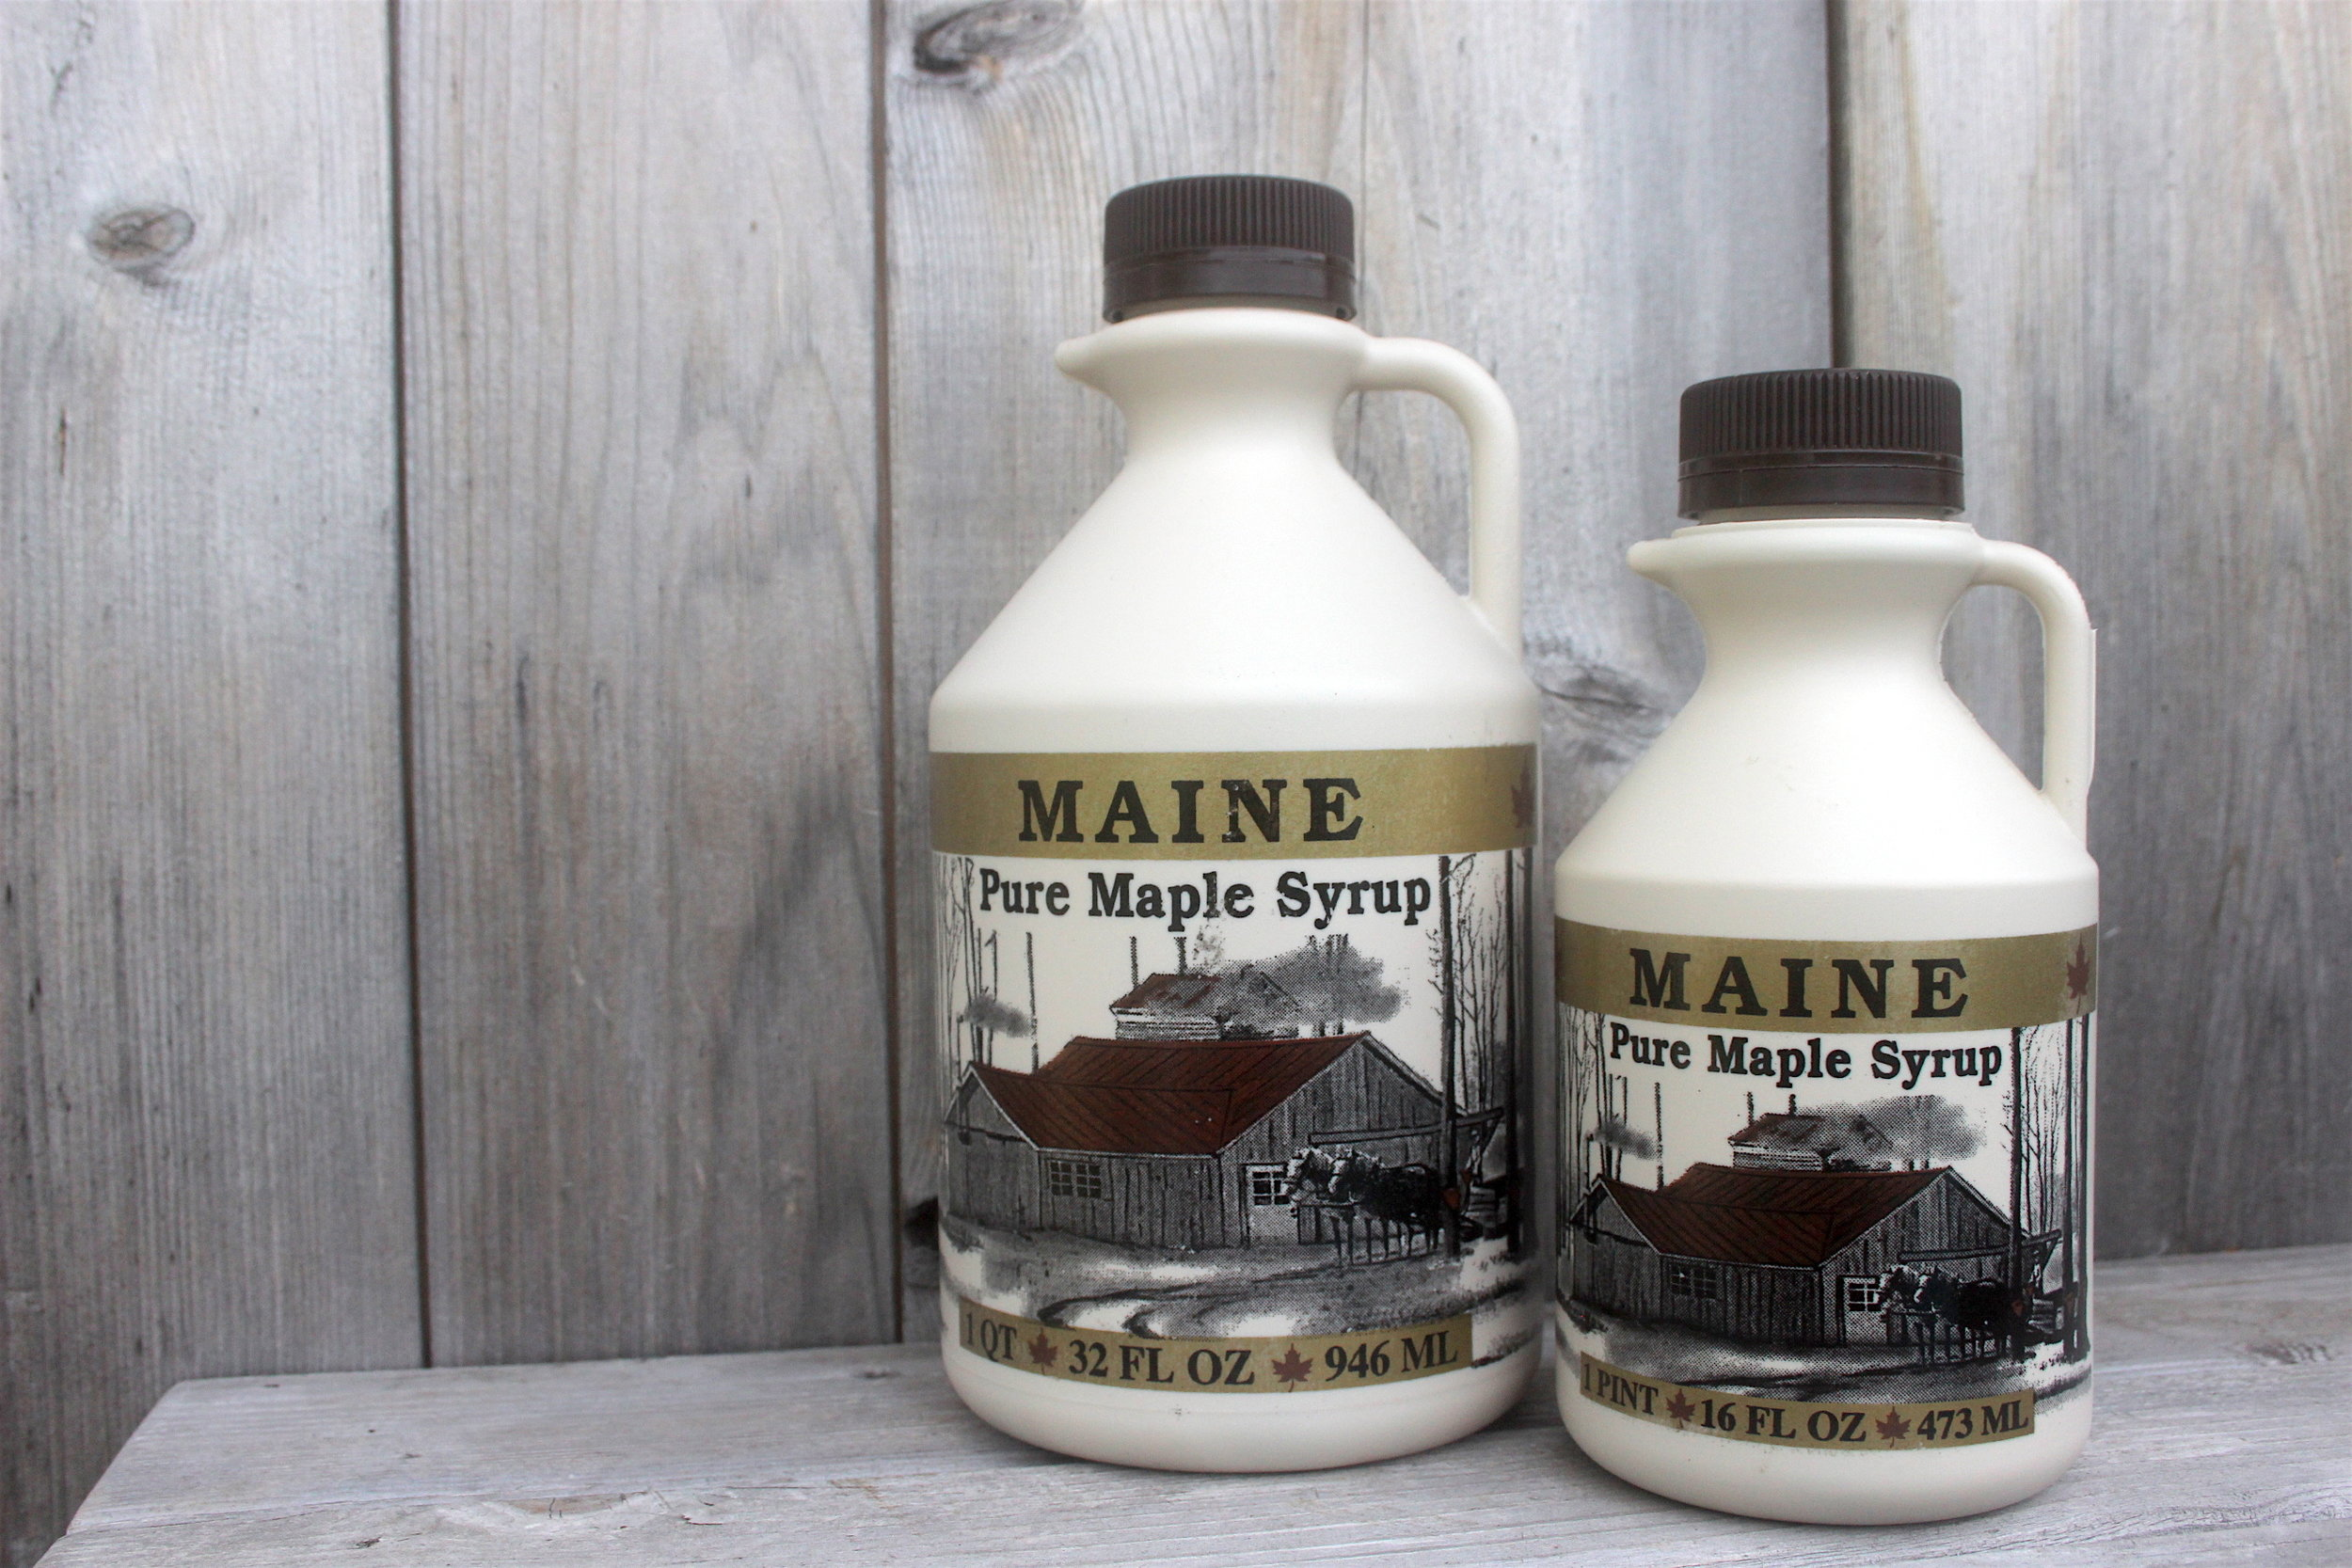 Maine Pure Maple Syrup